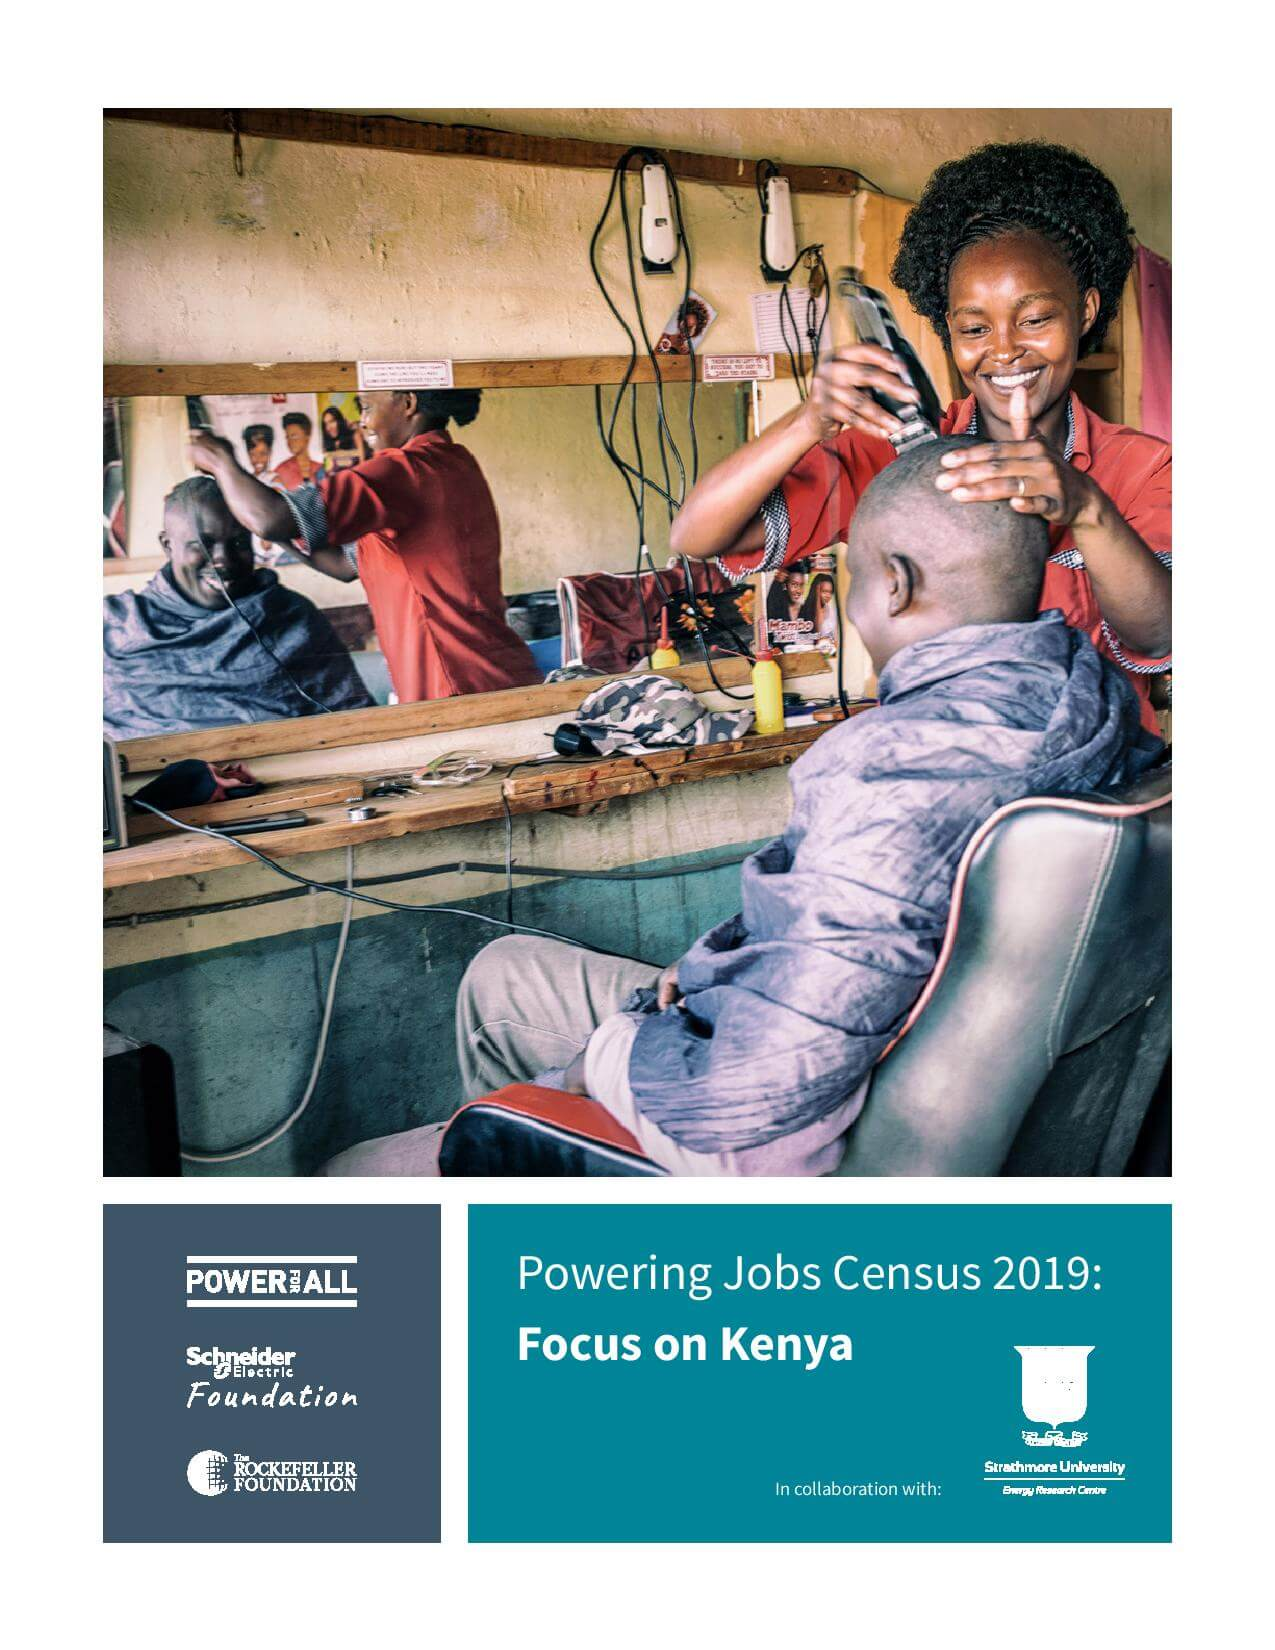 Powering-Jobs-Census-2019-Kenya-page-001.jpg